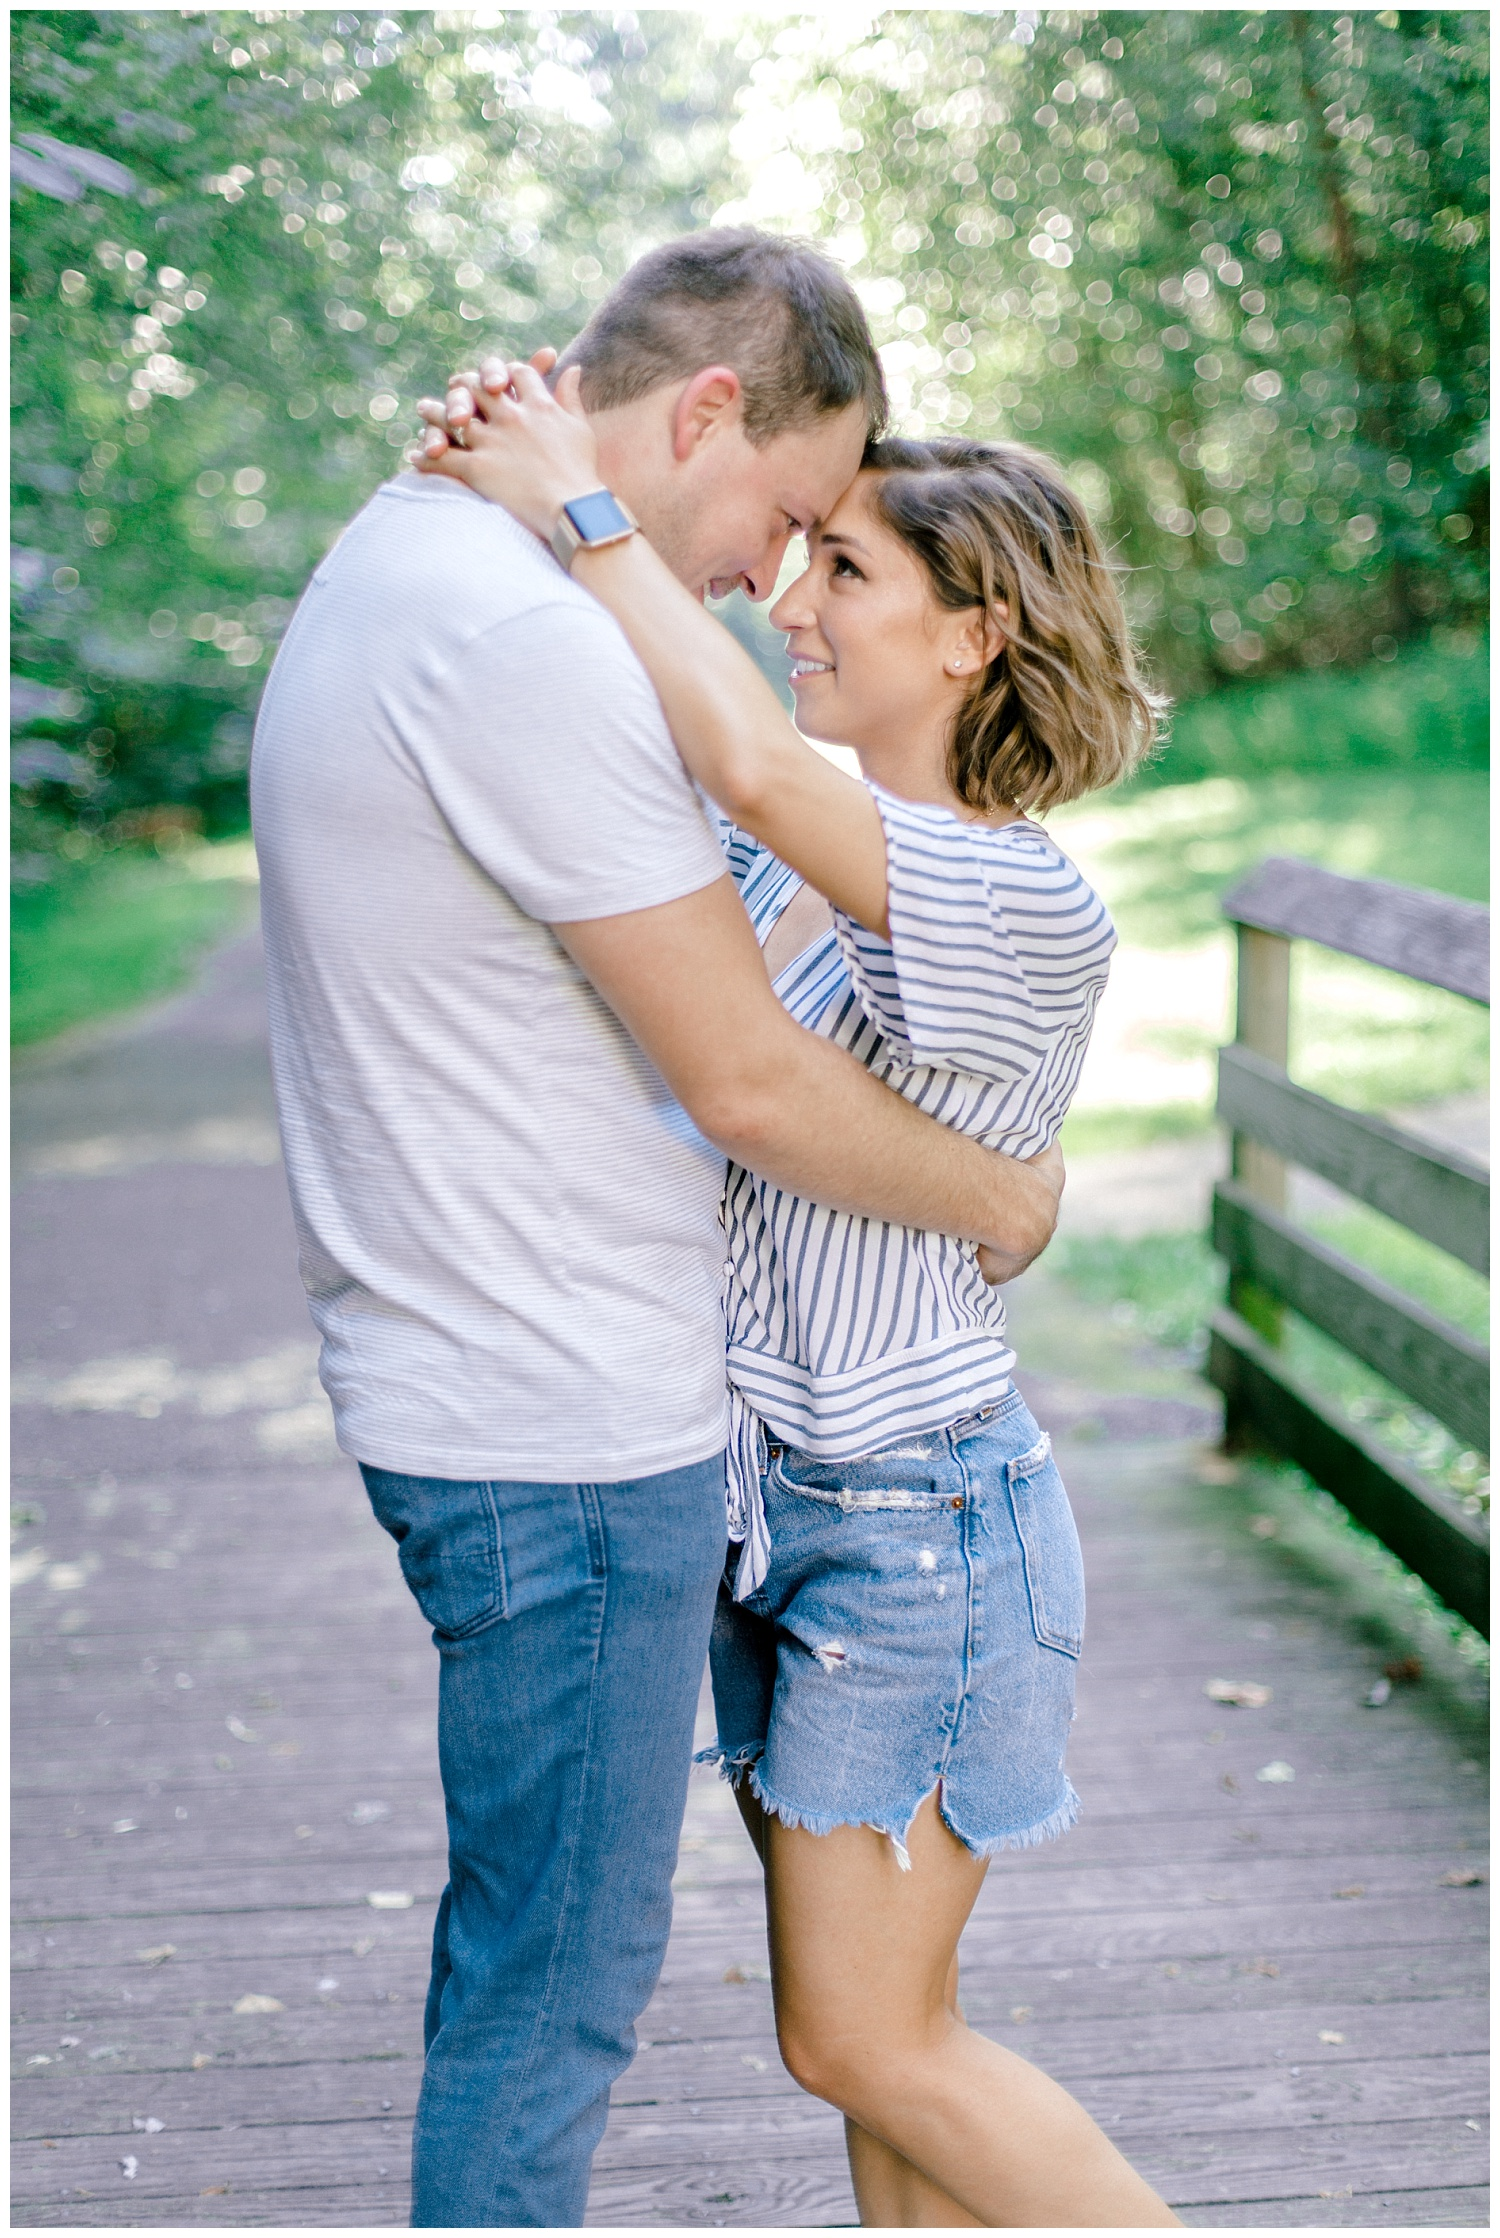 Wooded sunny Summertime engagement session in Odenton Maryland by Pennsylvania based wedding and lifestyle photographer Lytle photography_0010.jpg